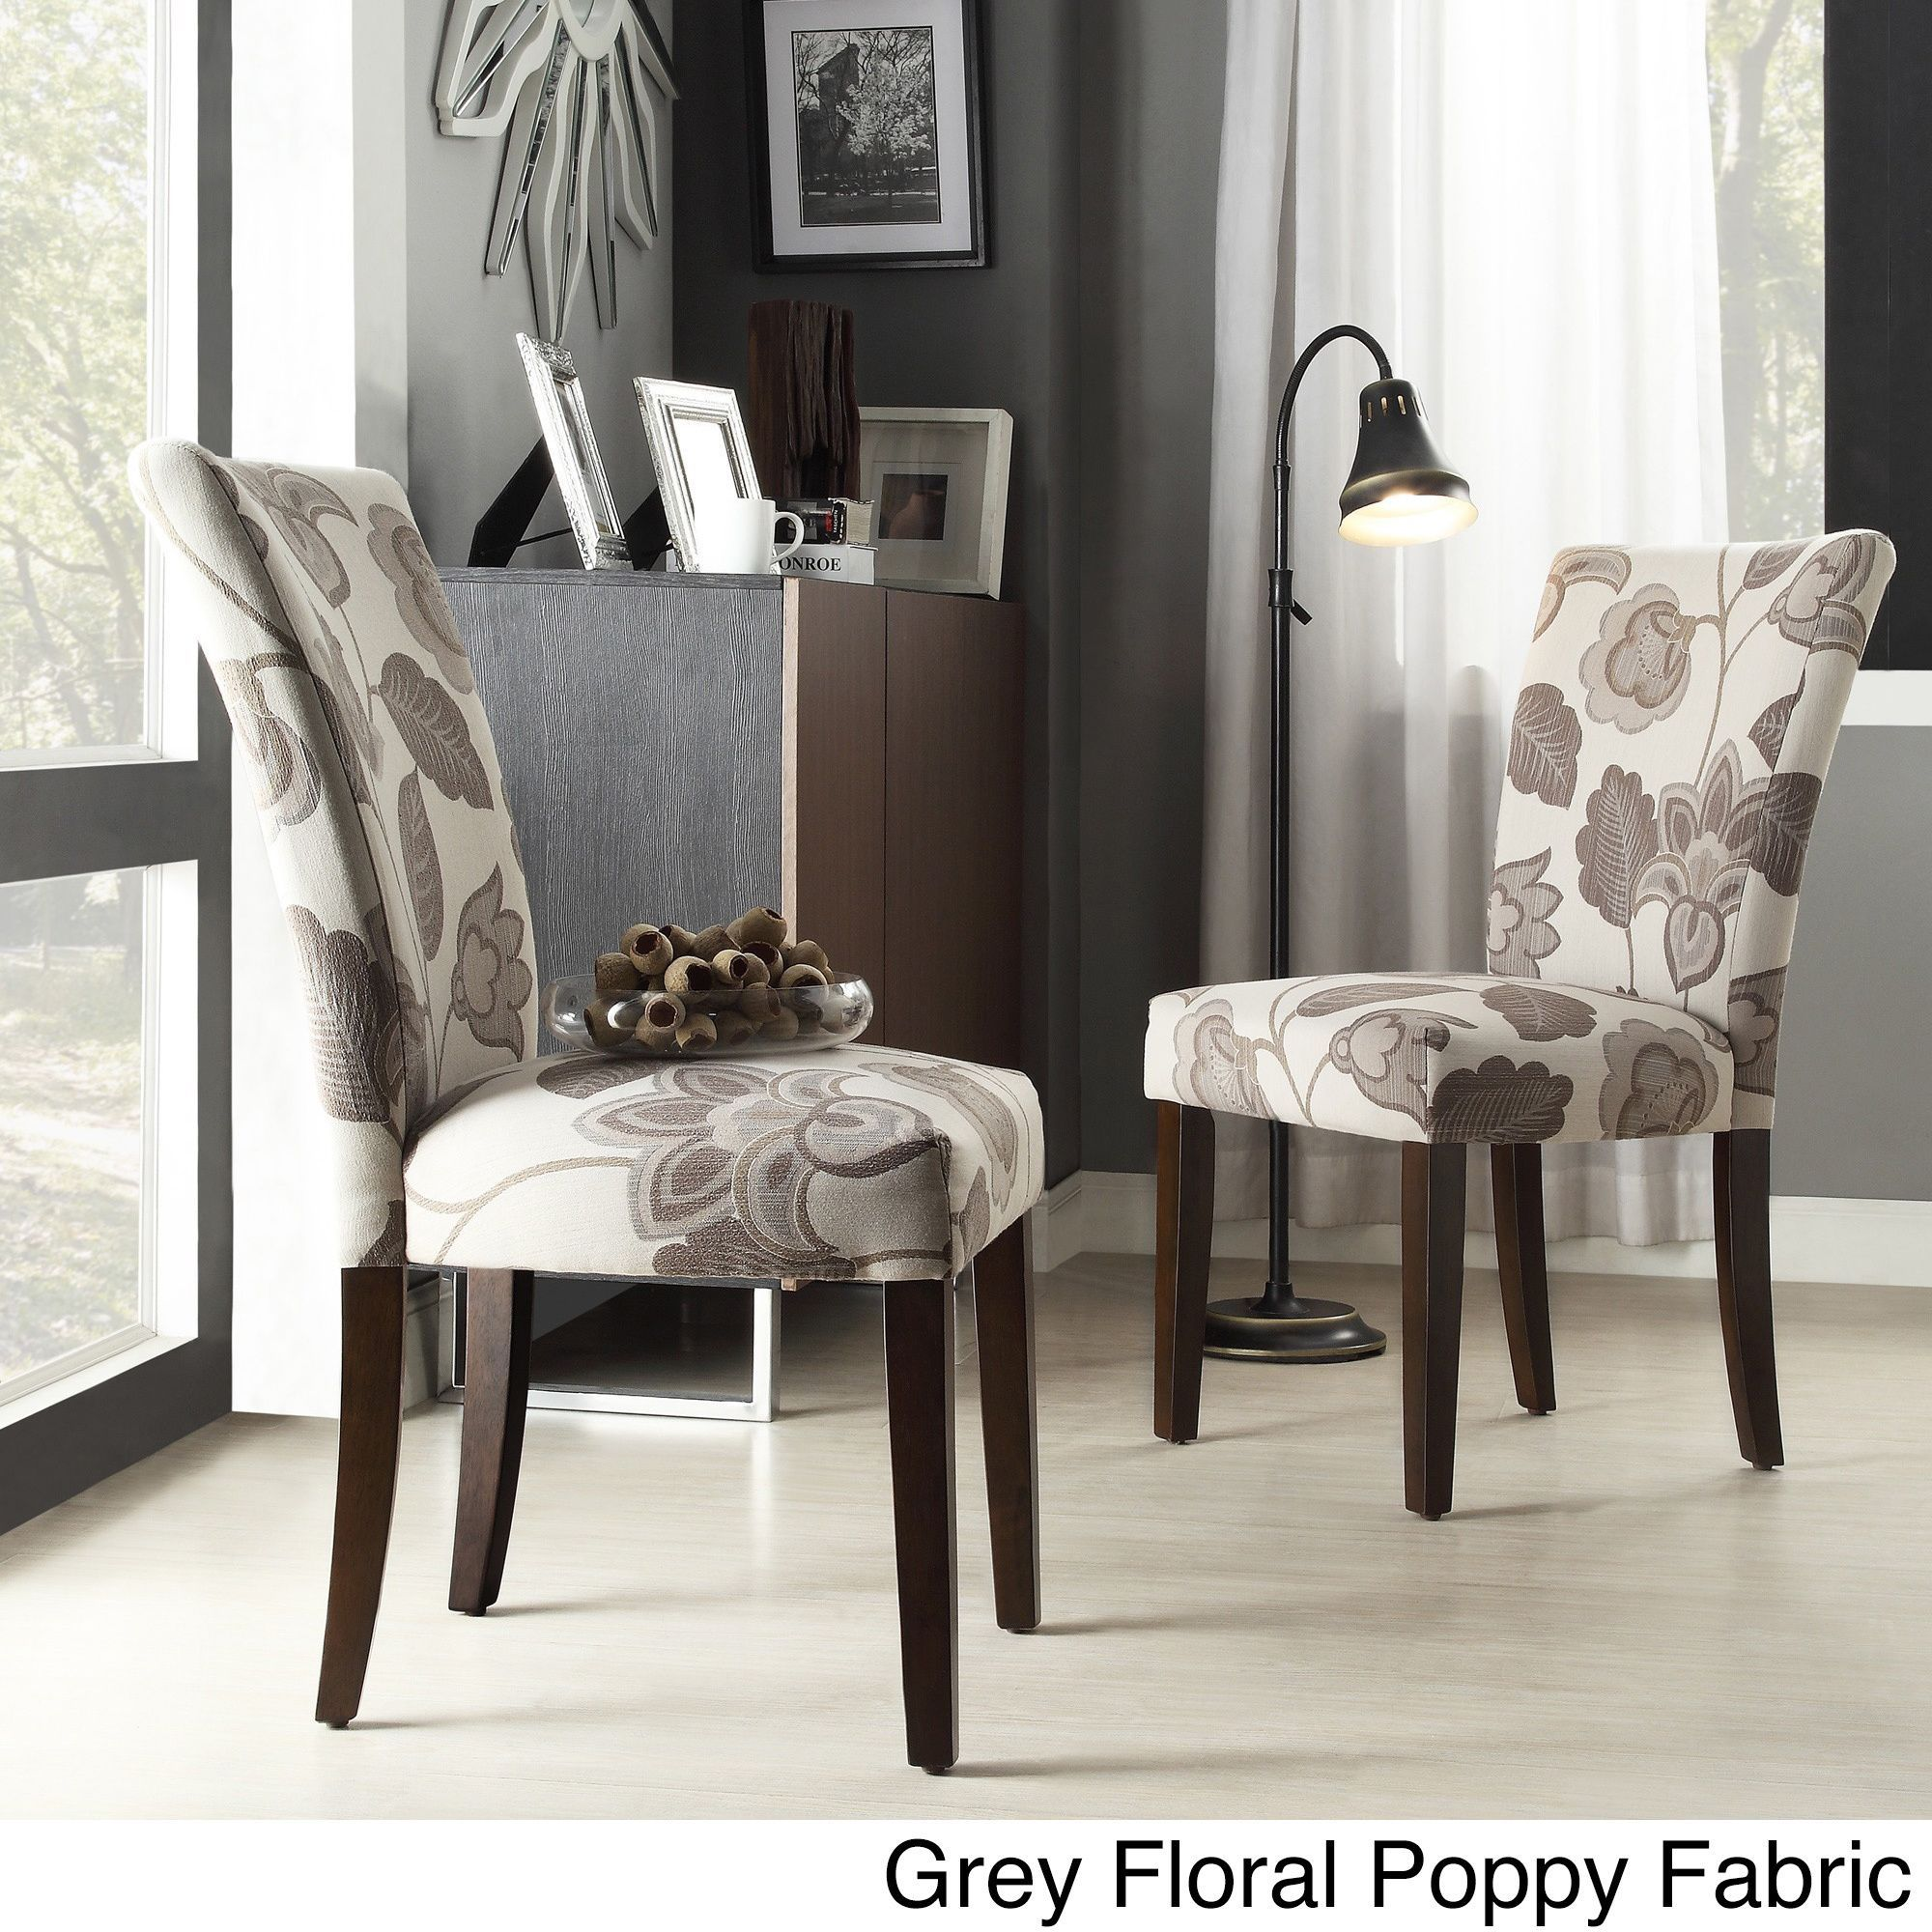 Catherine Print Parsons Dining Side Chair (Set of 2) by iNSPIRE Q Bold by  iNSPIRE Q